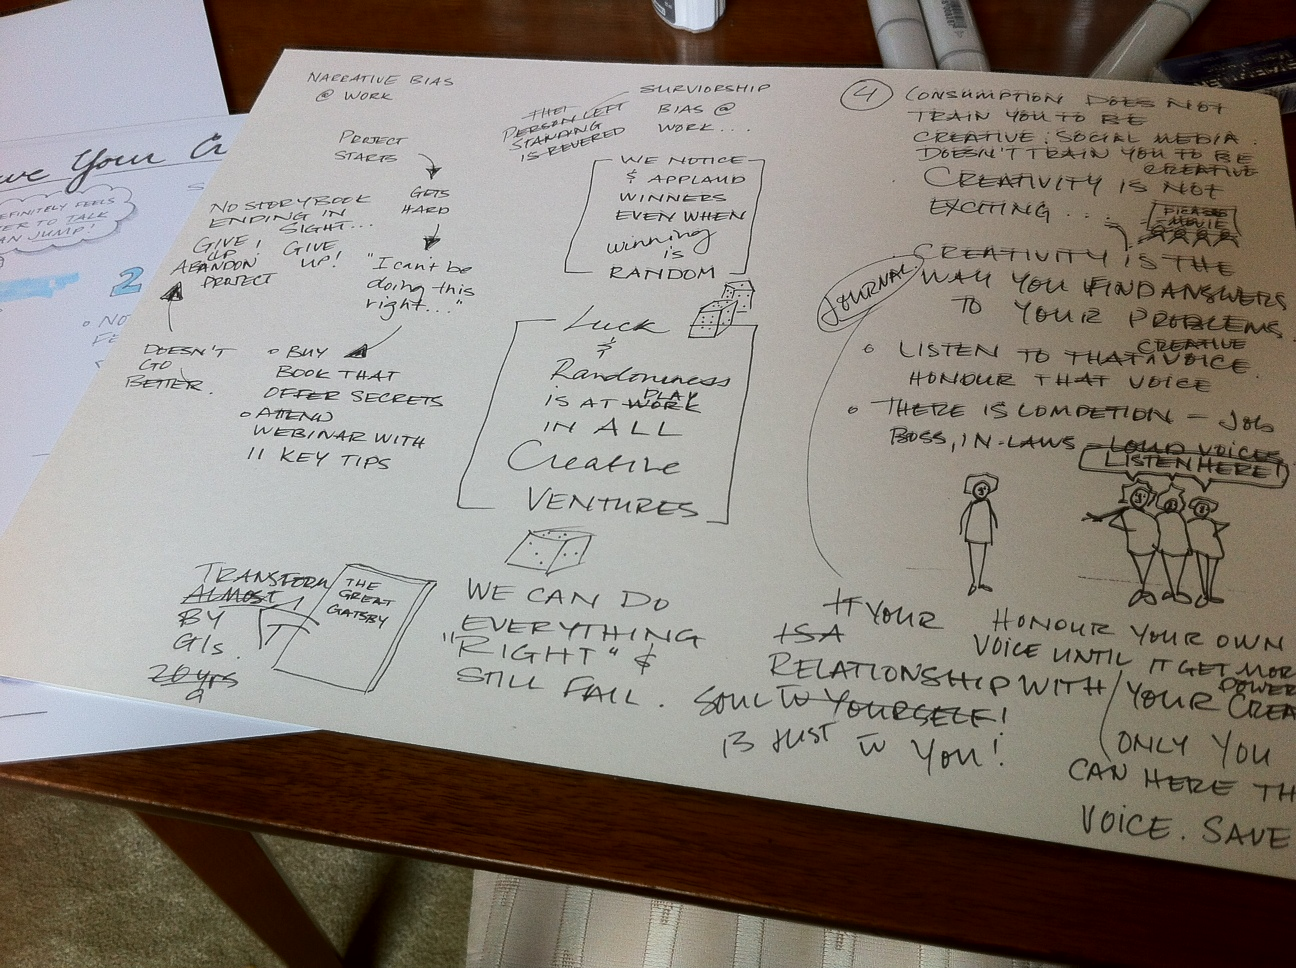 This is the first draft of the sketchnote's second page. You can see the challenges I was having with spacing and layout. Scott gave a content-rich talk and I really wanted to capture all of the key points.